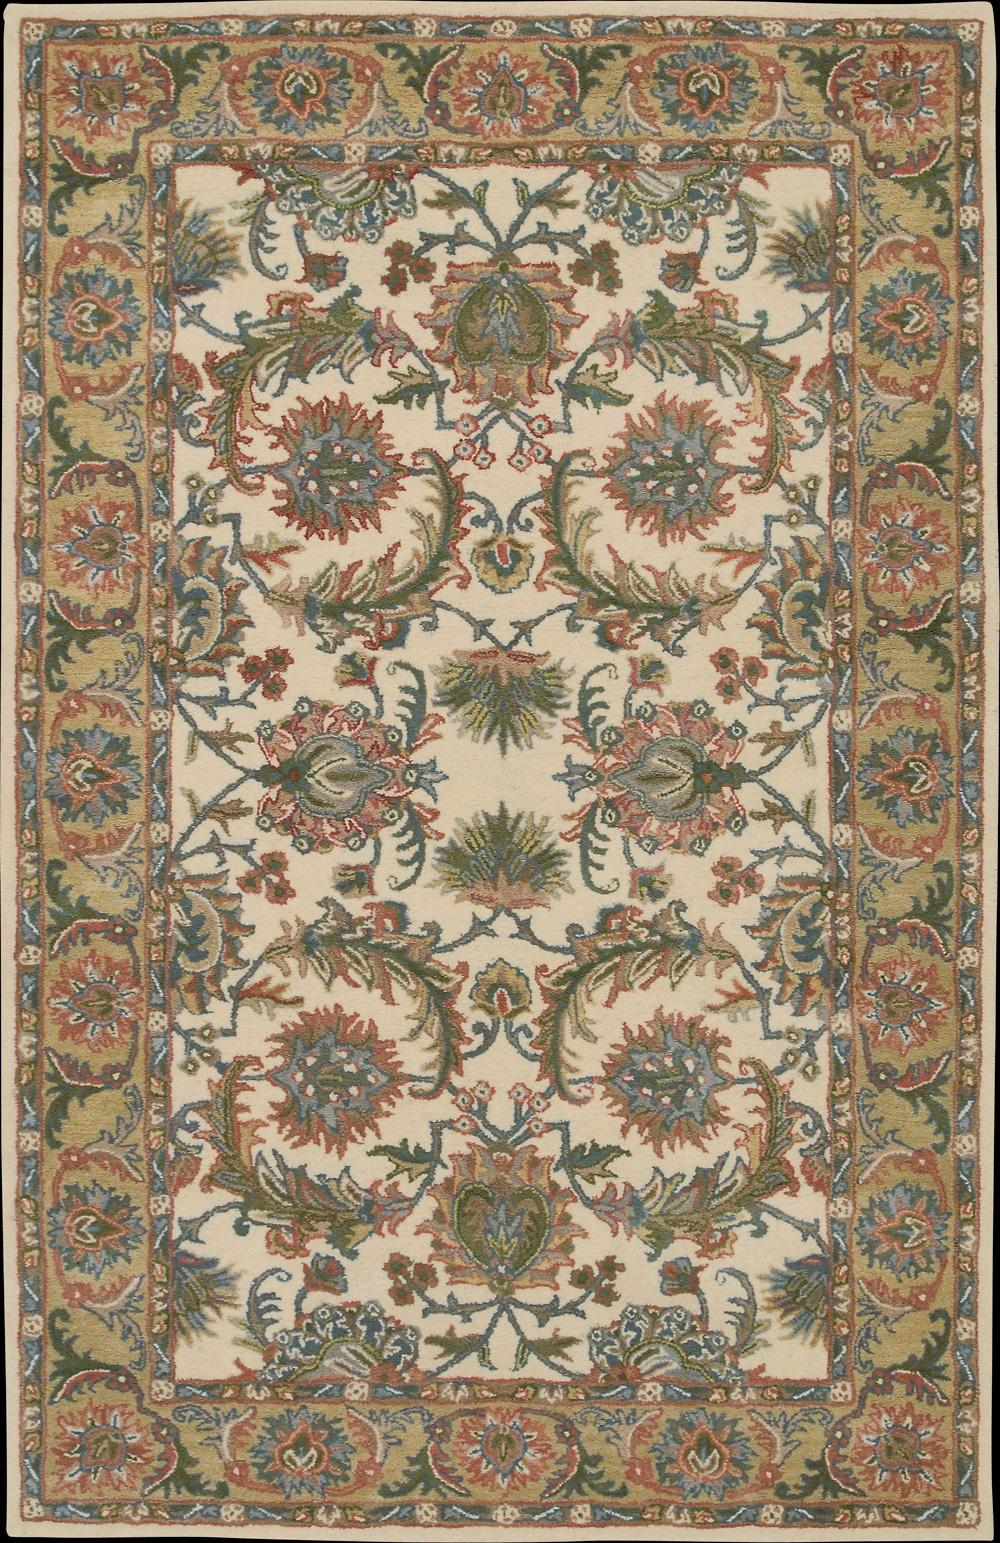 "Nourison India House Area Rug 3'6"" x 5'6"" - Item Number: 33838"